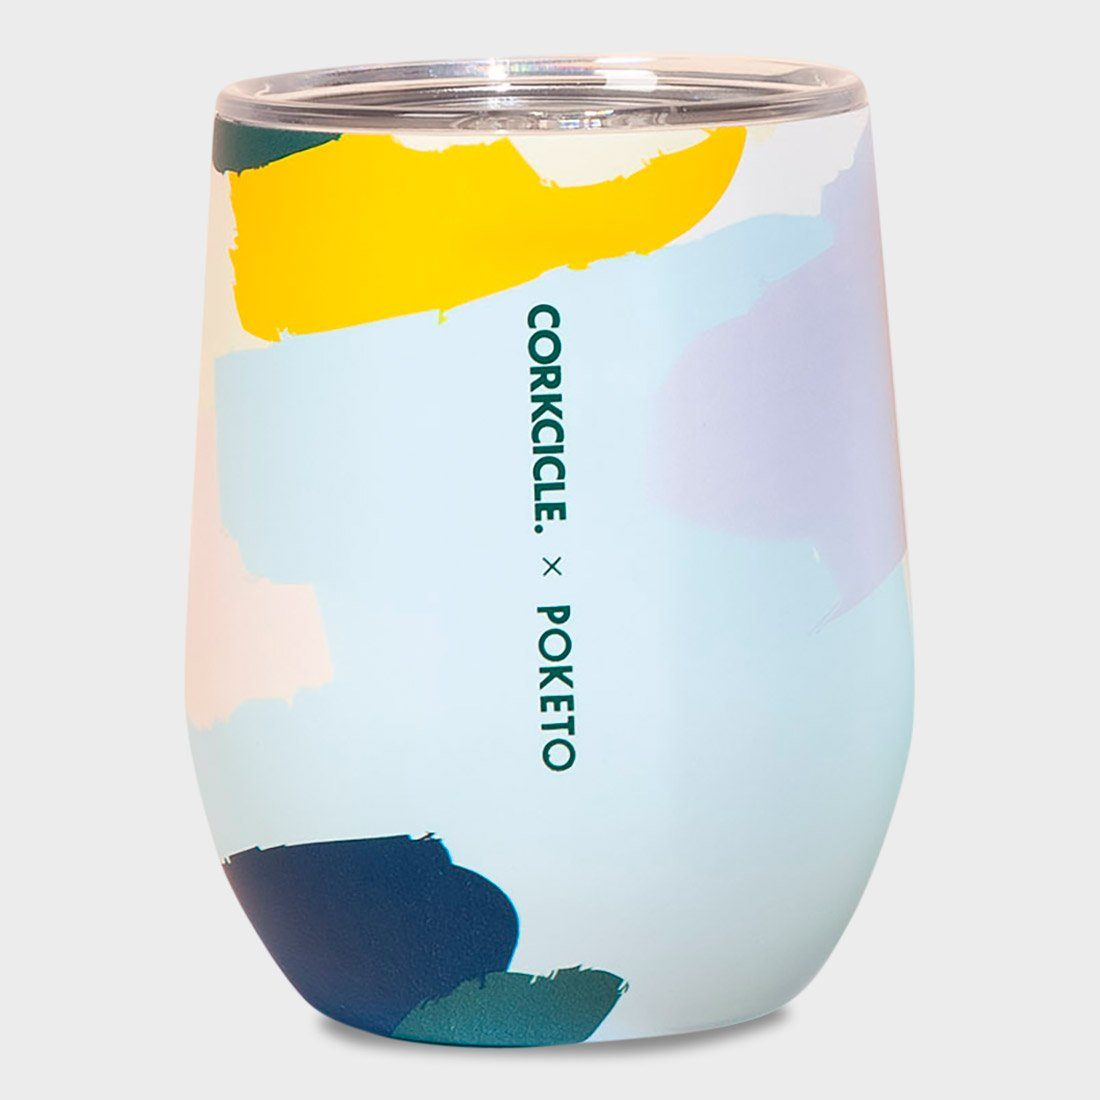 Corkcicle x Poketo Stemless Wine Tumbler 12 oz White Brush Stroke